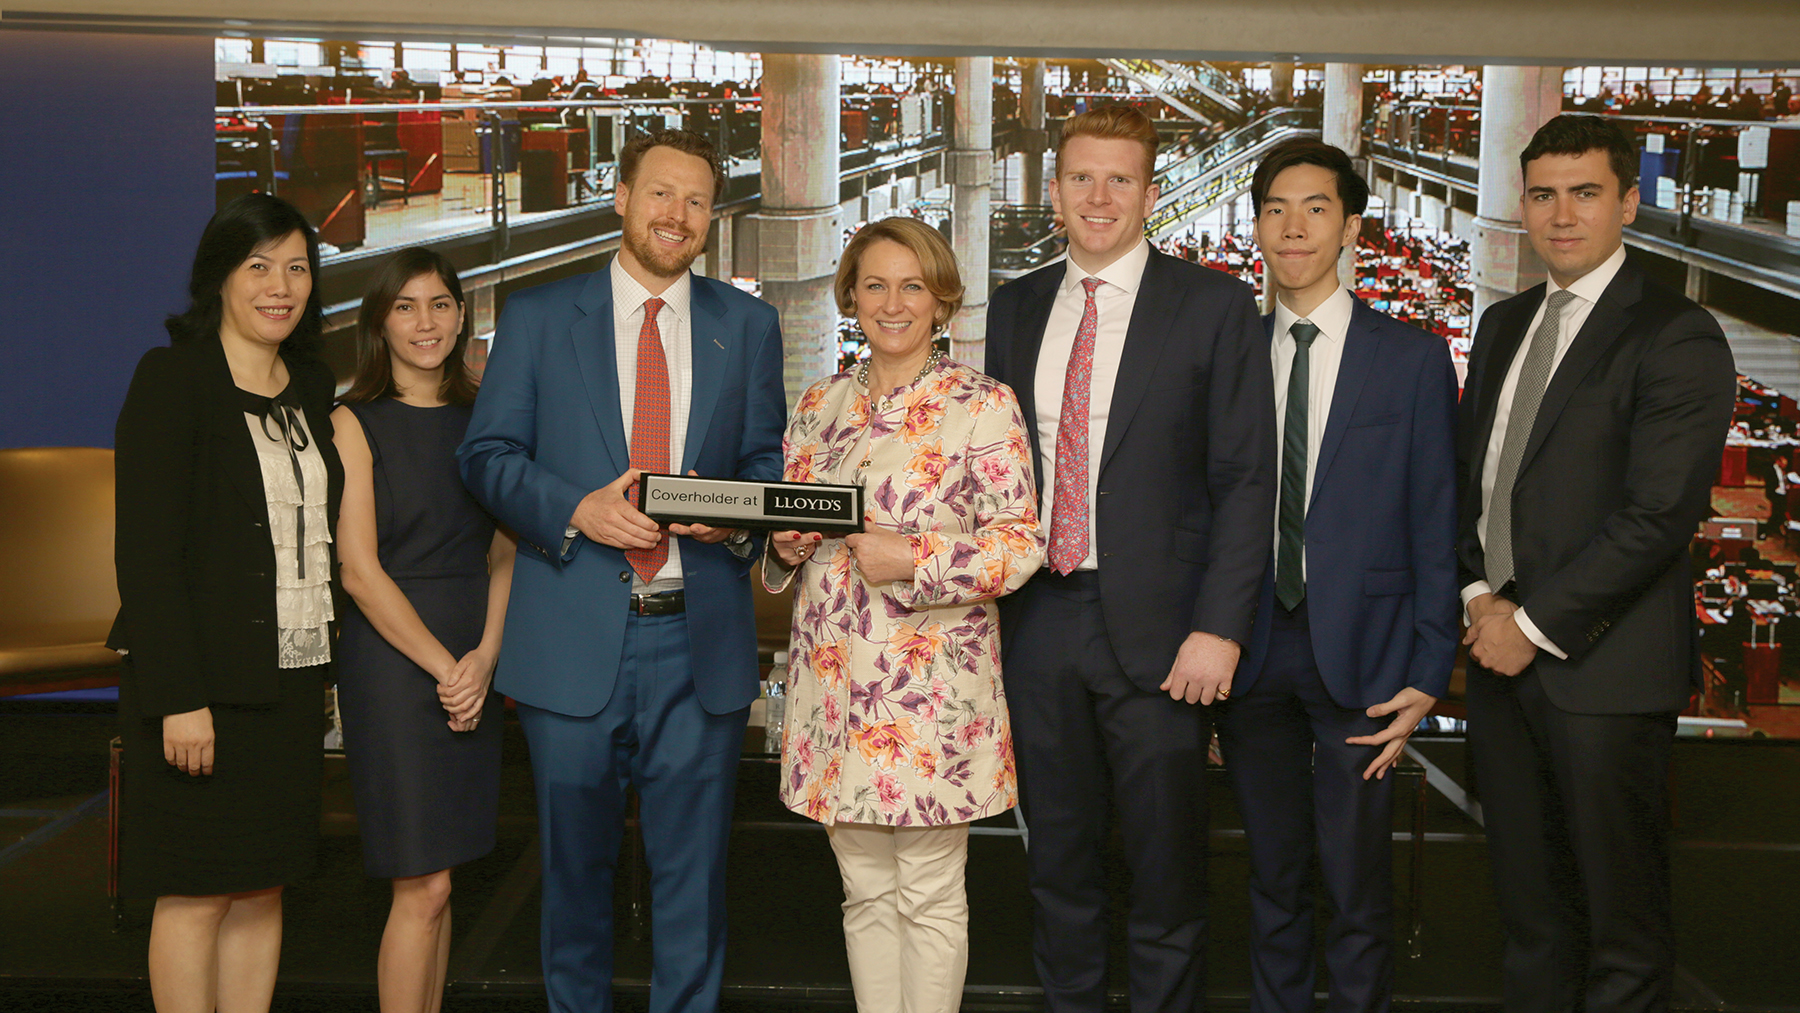 Circles Group Asia, the Asia Pacific operation for Circles Group, proudly received their Lloyd's Coverholder official plaque at the Lloyd's Day on 5 April in Hong Kong. <br>